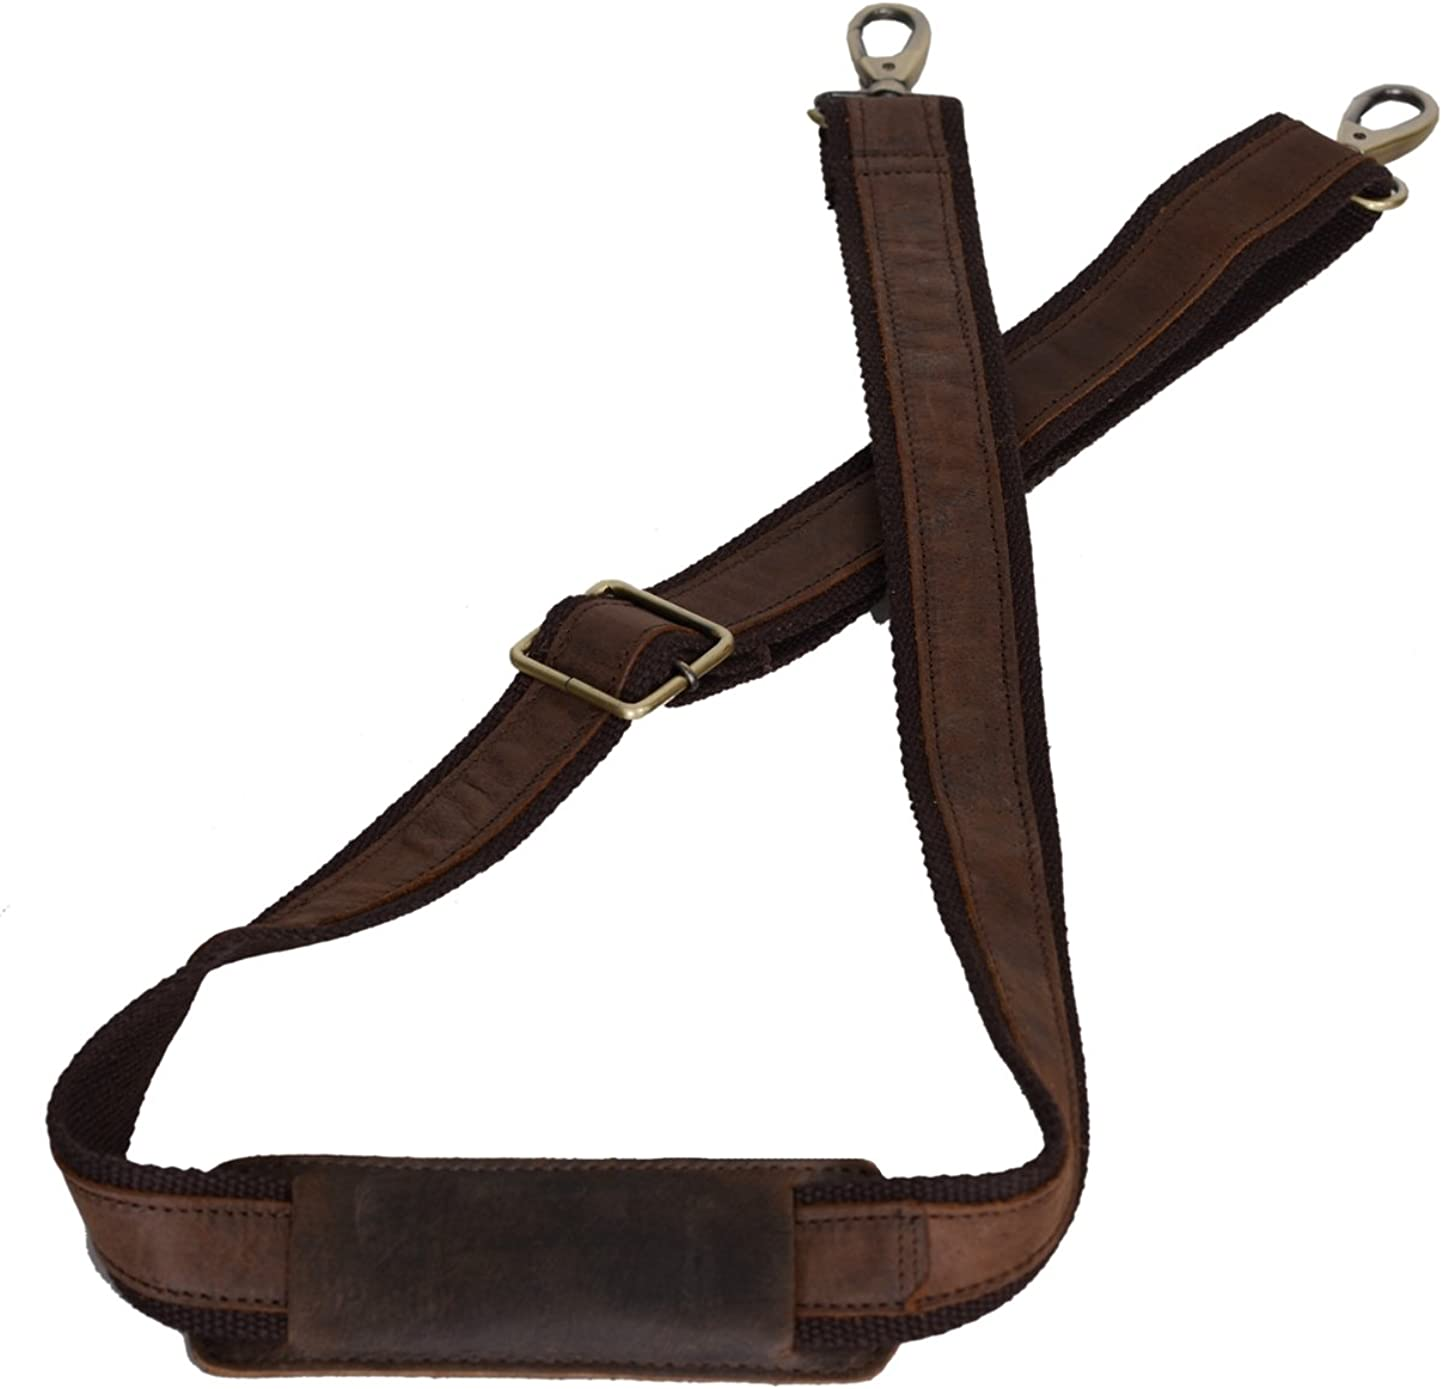 KOMALC LEATHER ADJUSTABLE PADDED SHOULDER STRAP FOR LAPTOP CAMERA DUFFLE BAGS